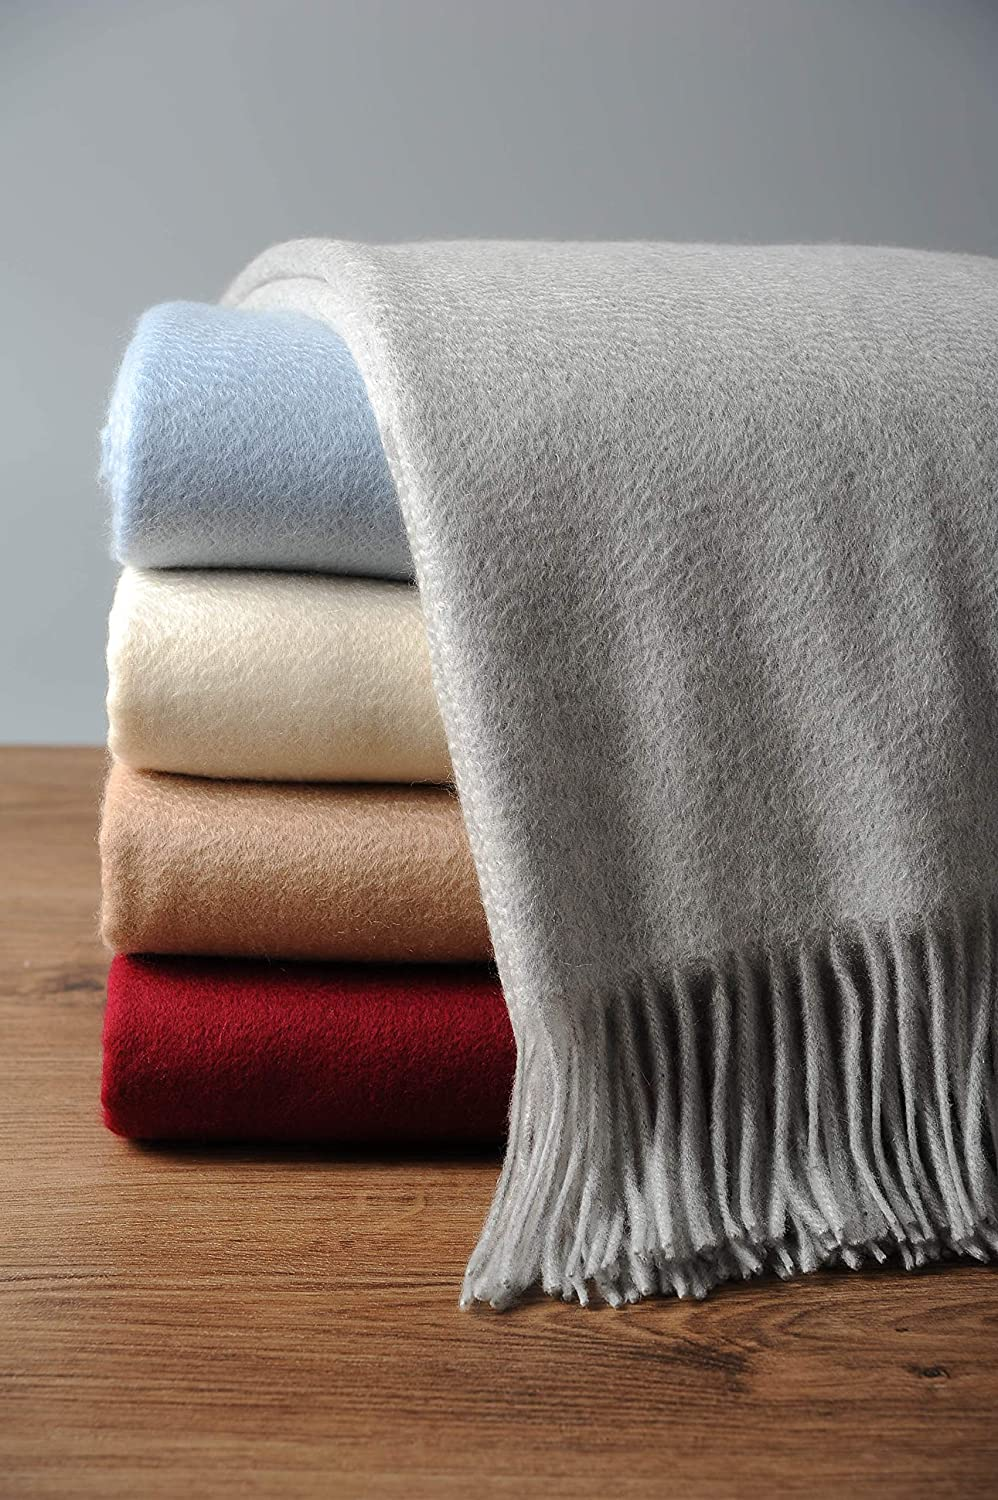 romantic-gifts-for-her-blanket